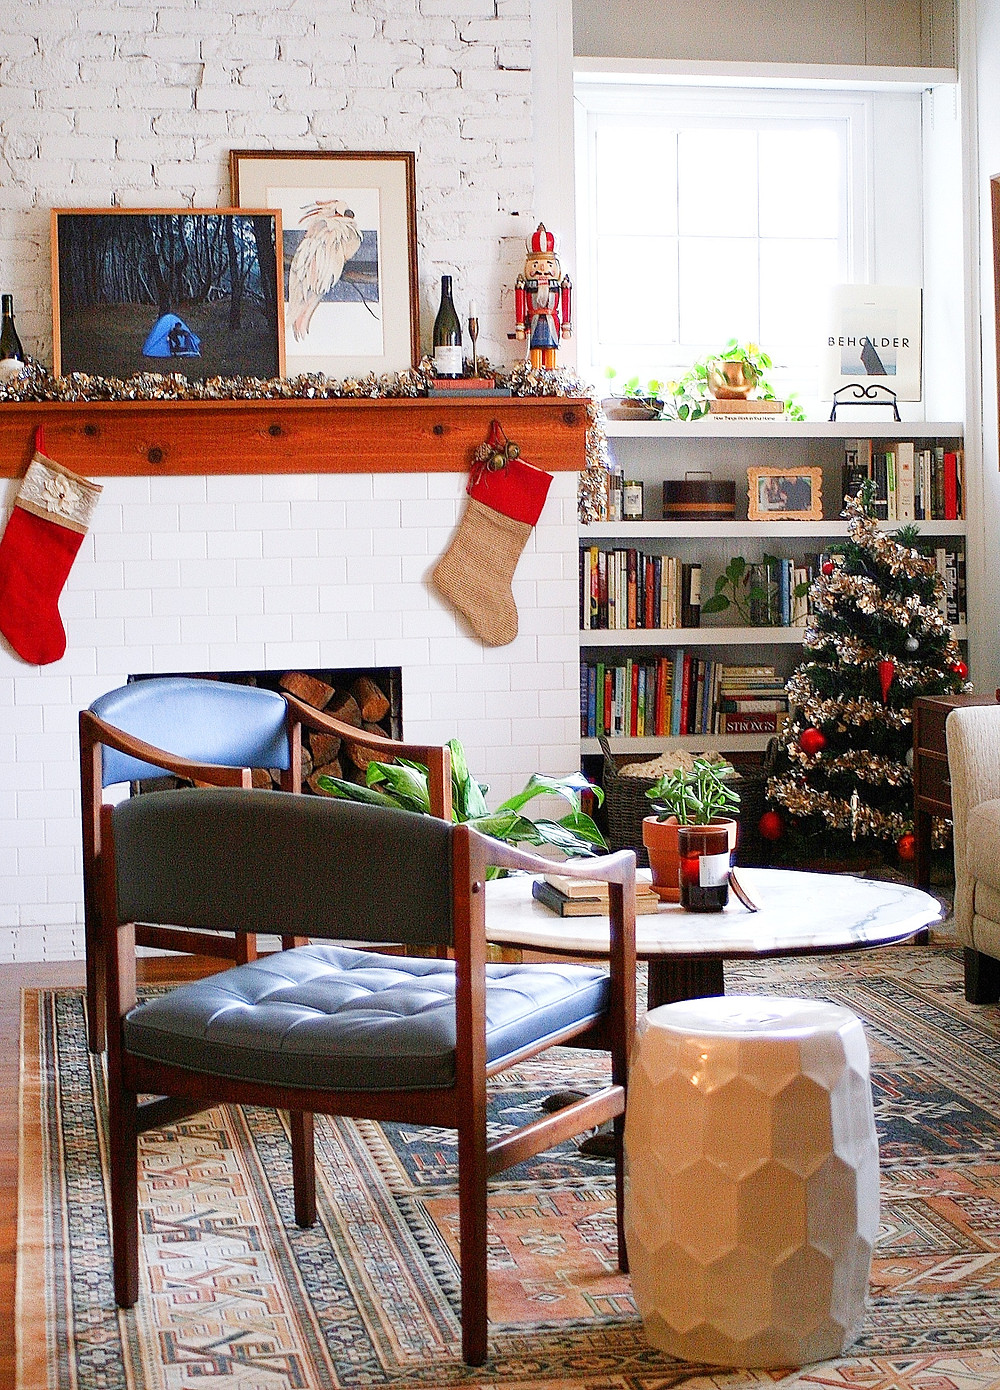 A shot showing the Christmas tree and mantel.